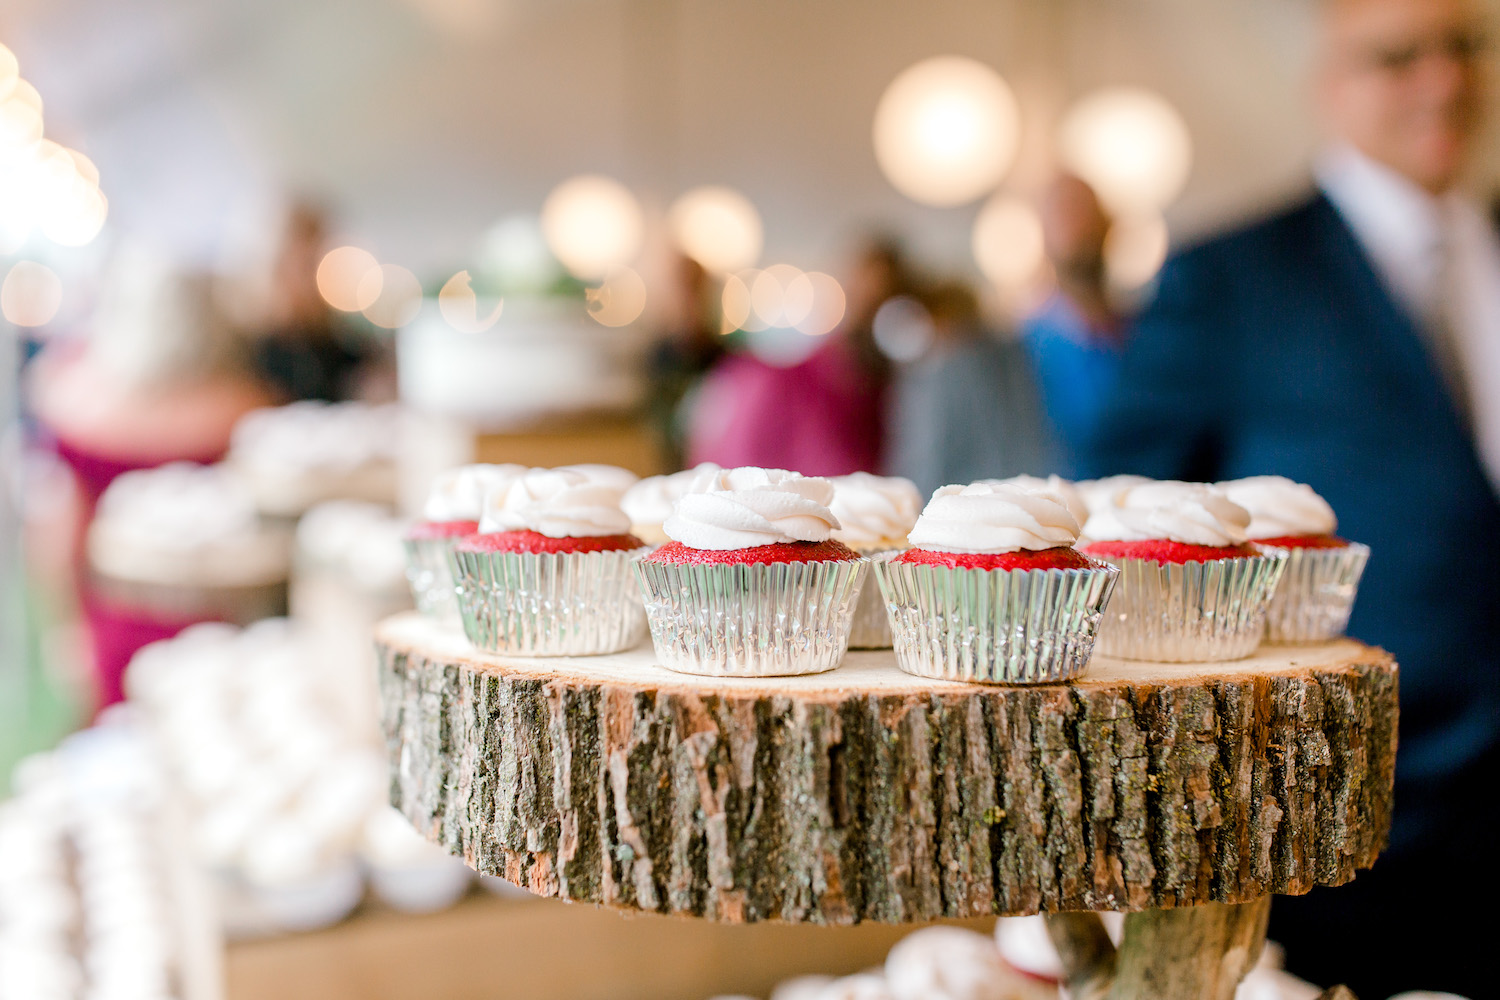 Wallinwood Springs Golf Course wedding cupcakes on stand